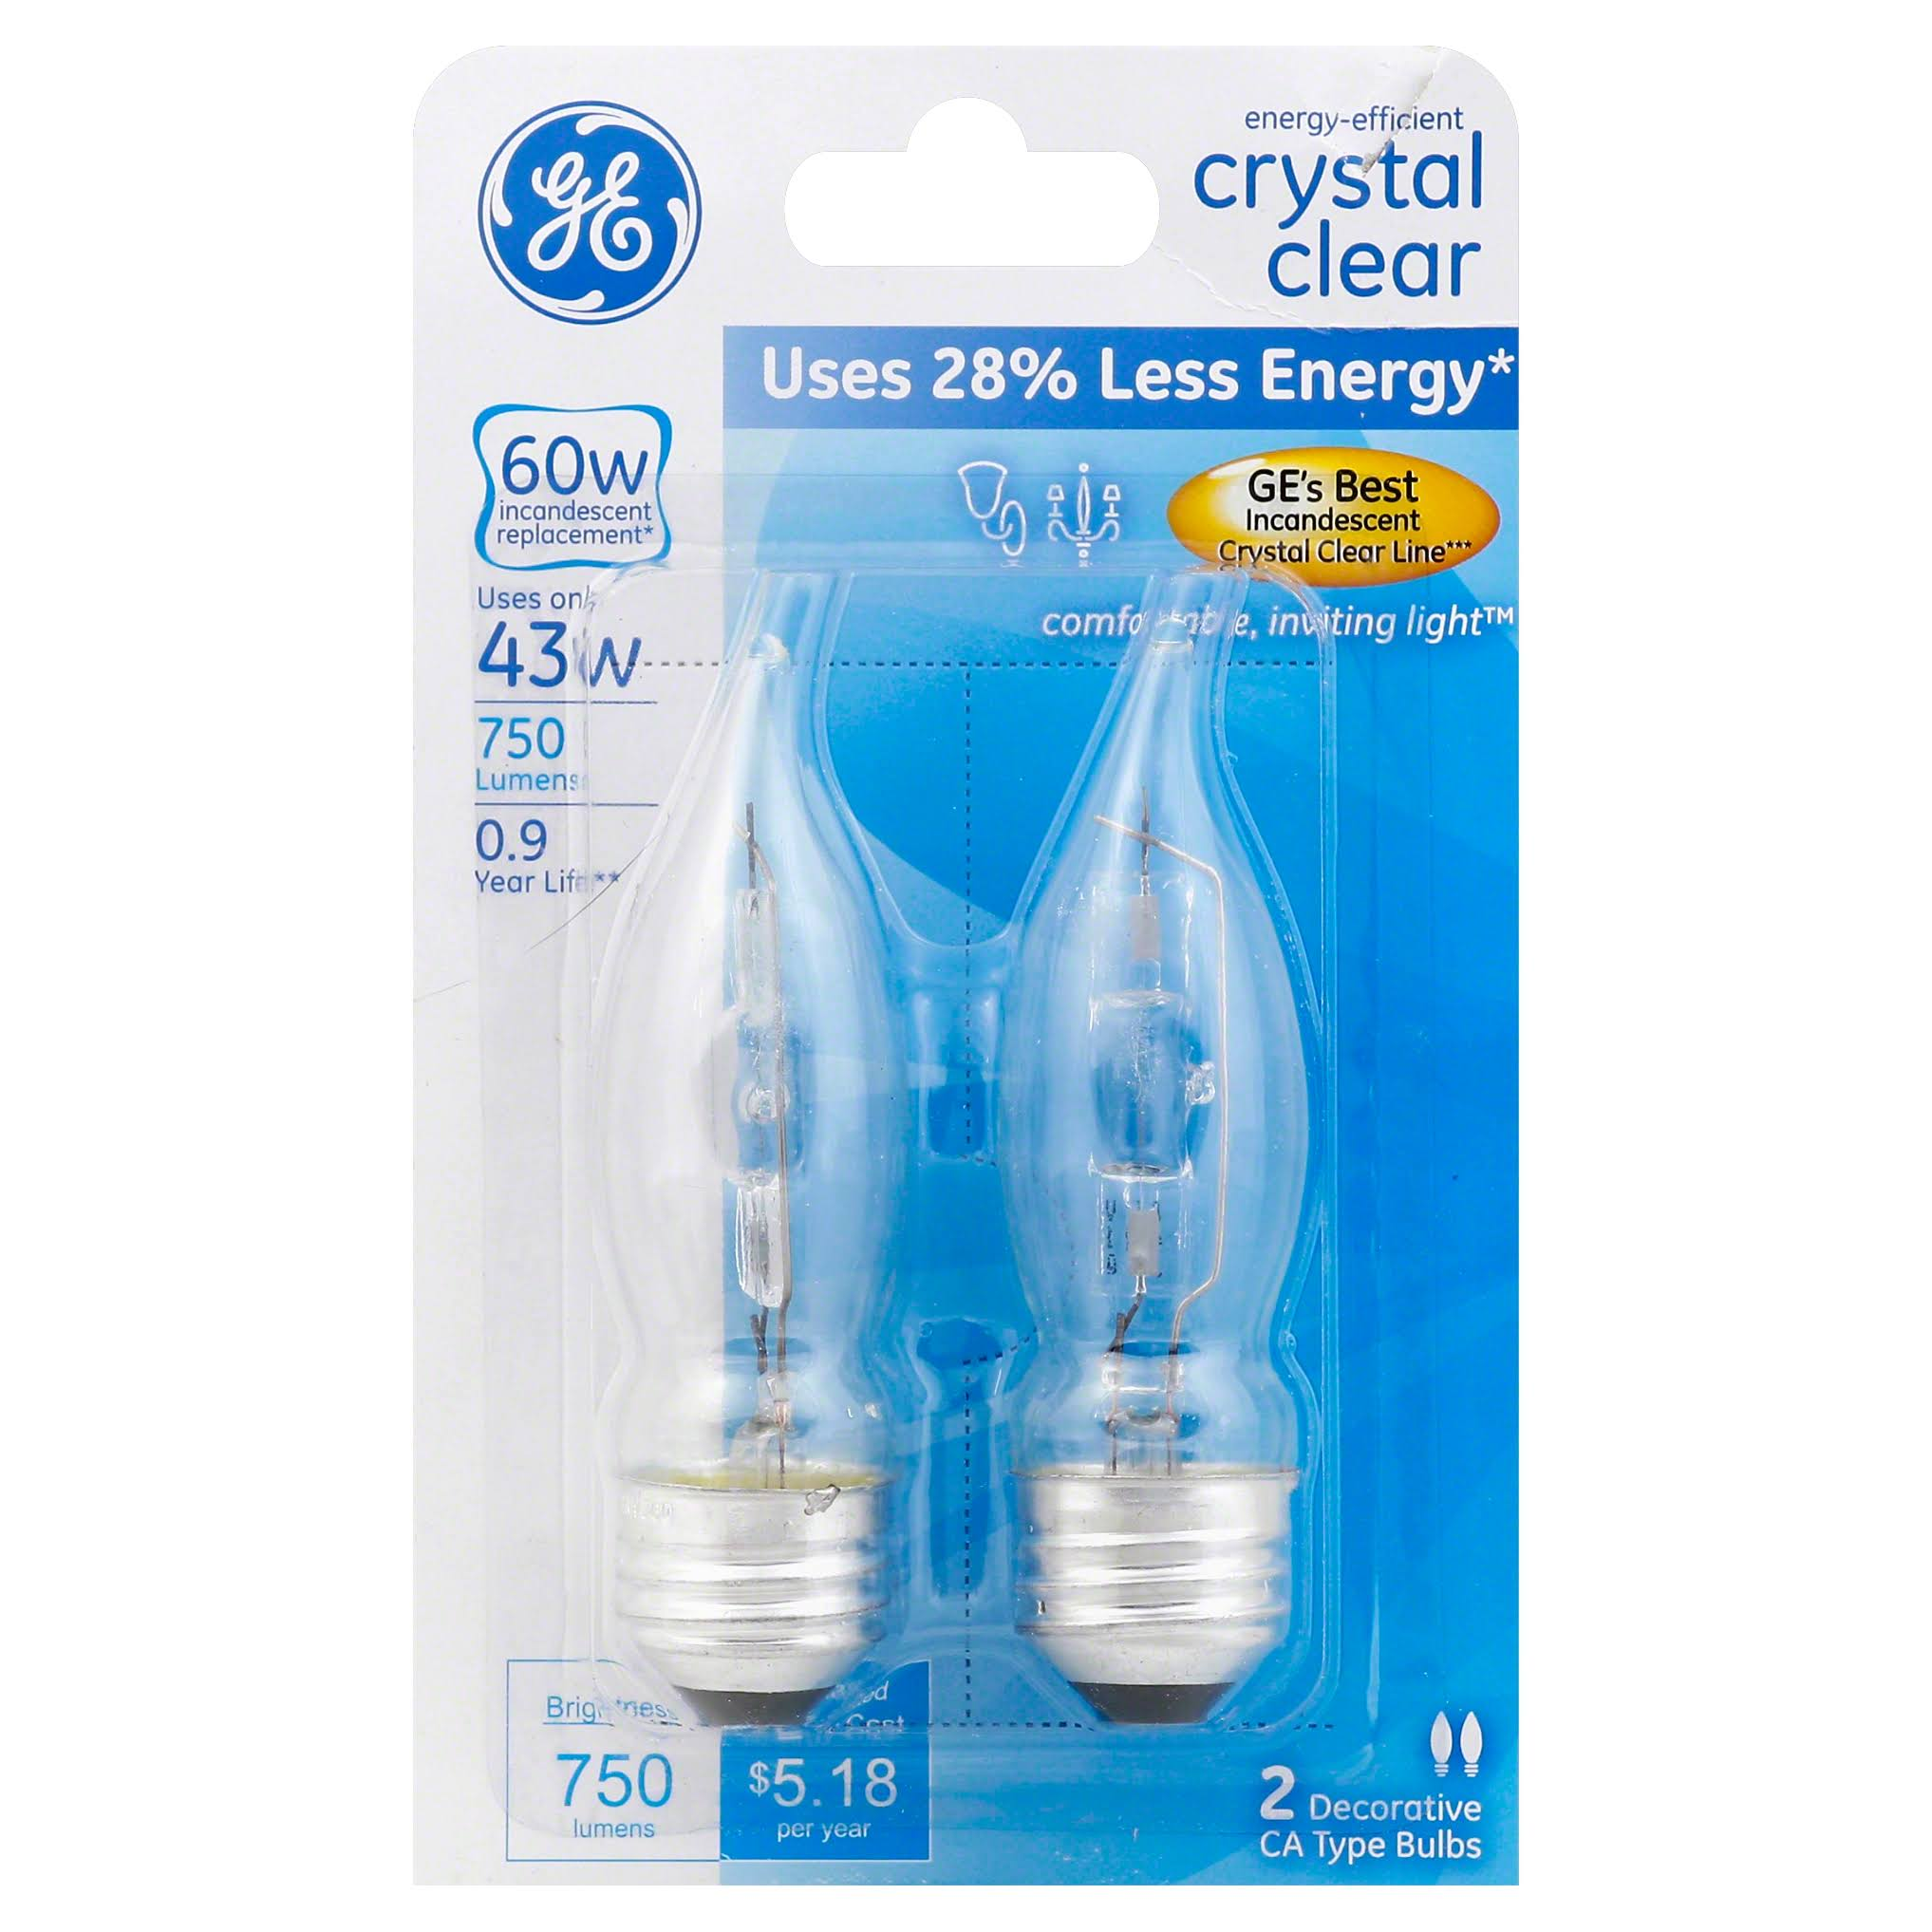 Ge Lighting Energy Efficient Crystal Clear Halogen Bulb - 43W, 2 Pack